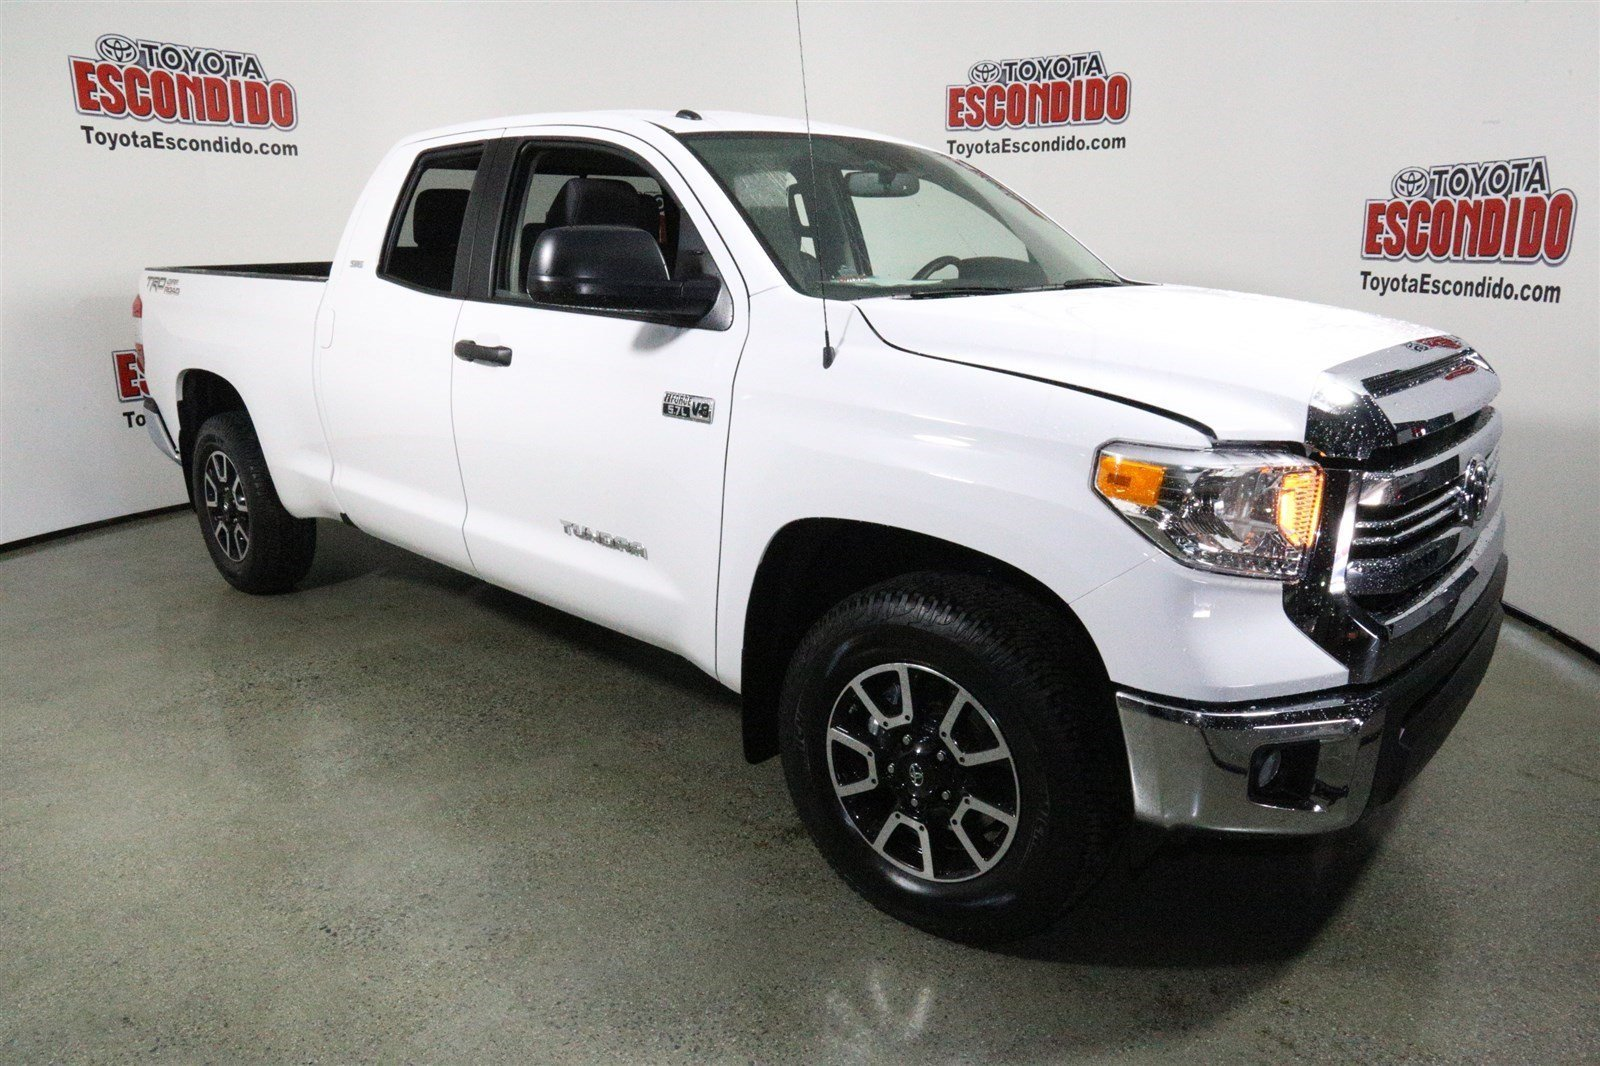 new 2017 toyota tundra 2wd sr5 double cab pickup in escondido hx217534 toyota of escondido. Black Bedroom Furniture Sets. Home Design Ideas